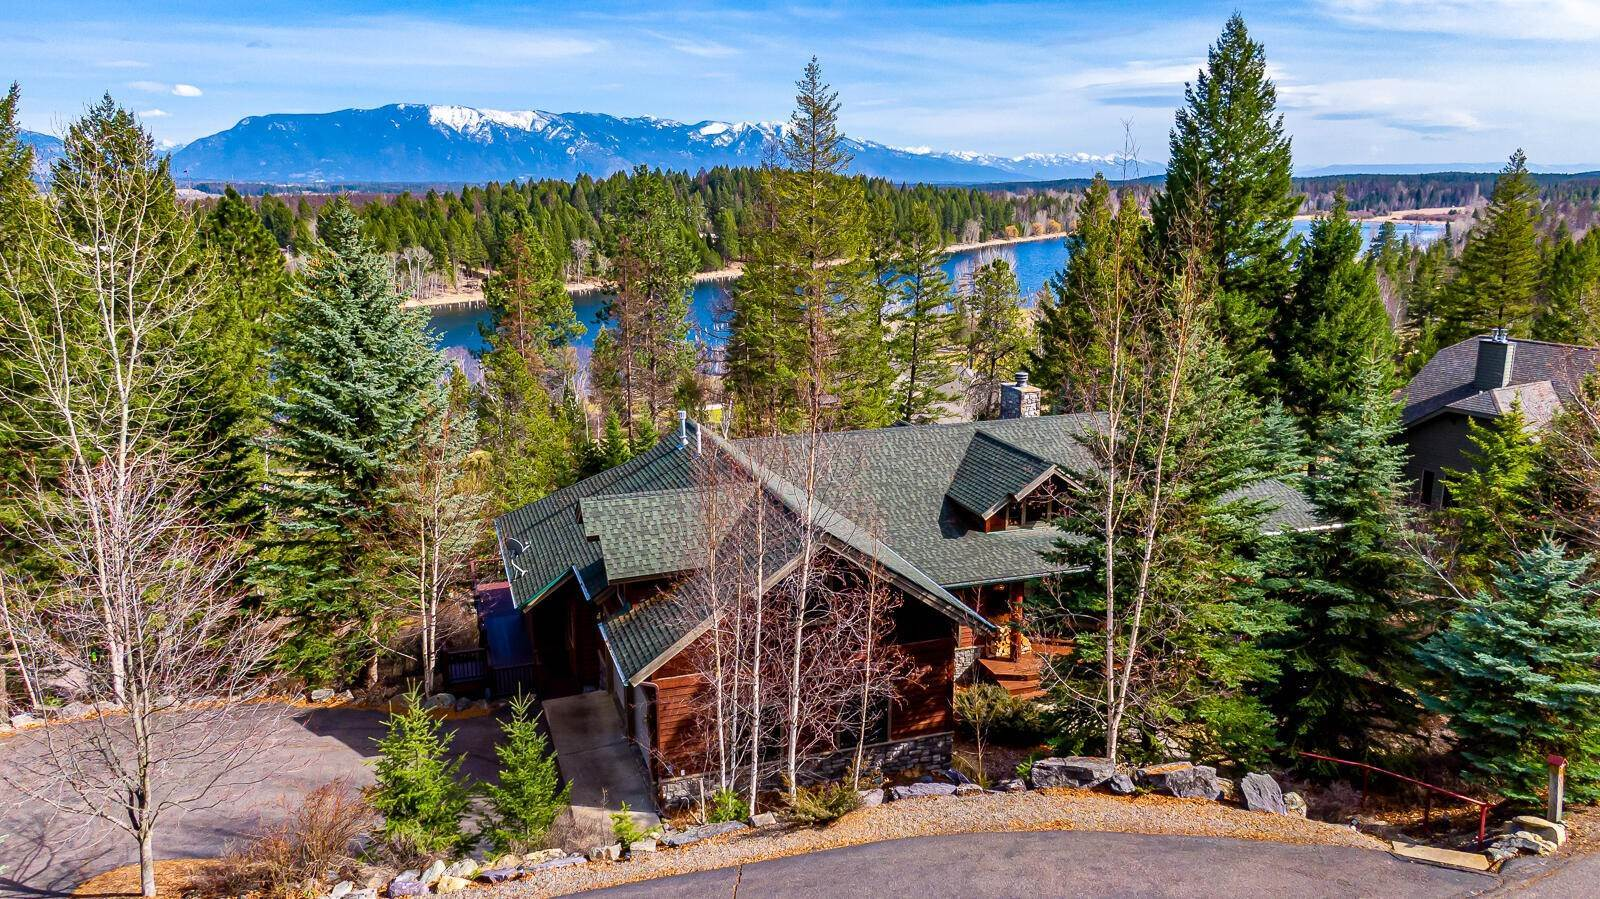 Single Family Homes for Sale at 103 Mountainside Drive Whitefish, Montana 59937 United States